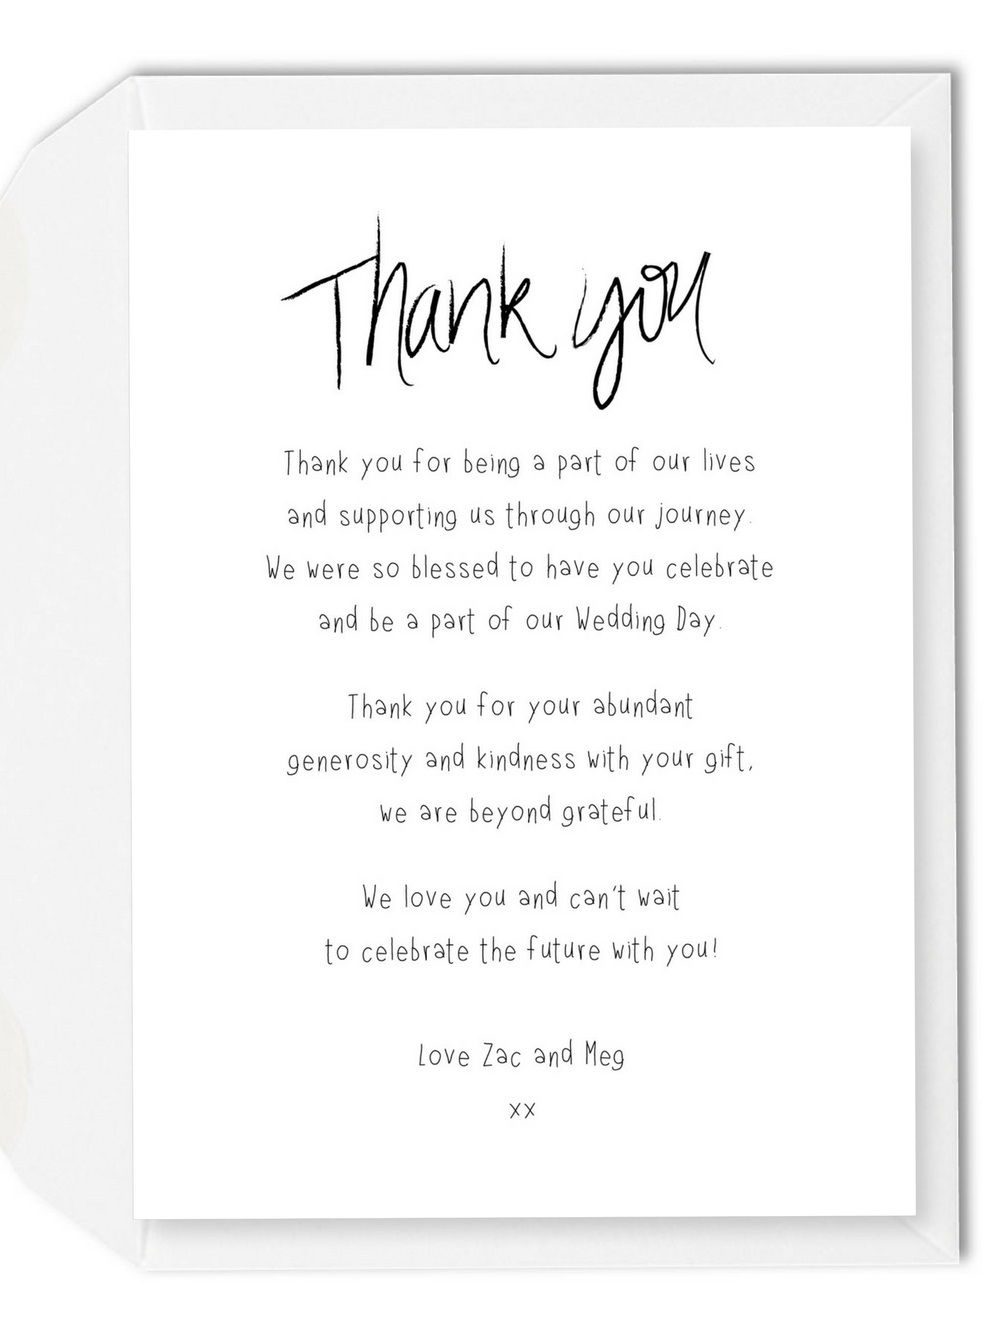 002 Imposing Wedding Thank You Note Template Picture  Example Wording Sample For Money Gift ShowerFull